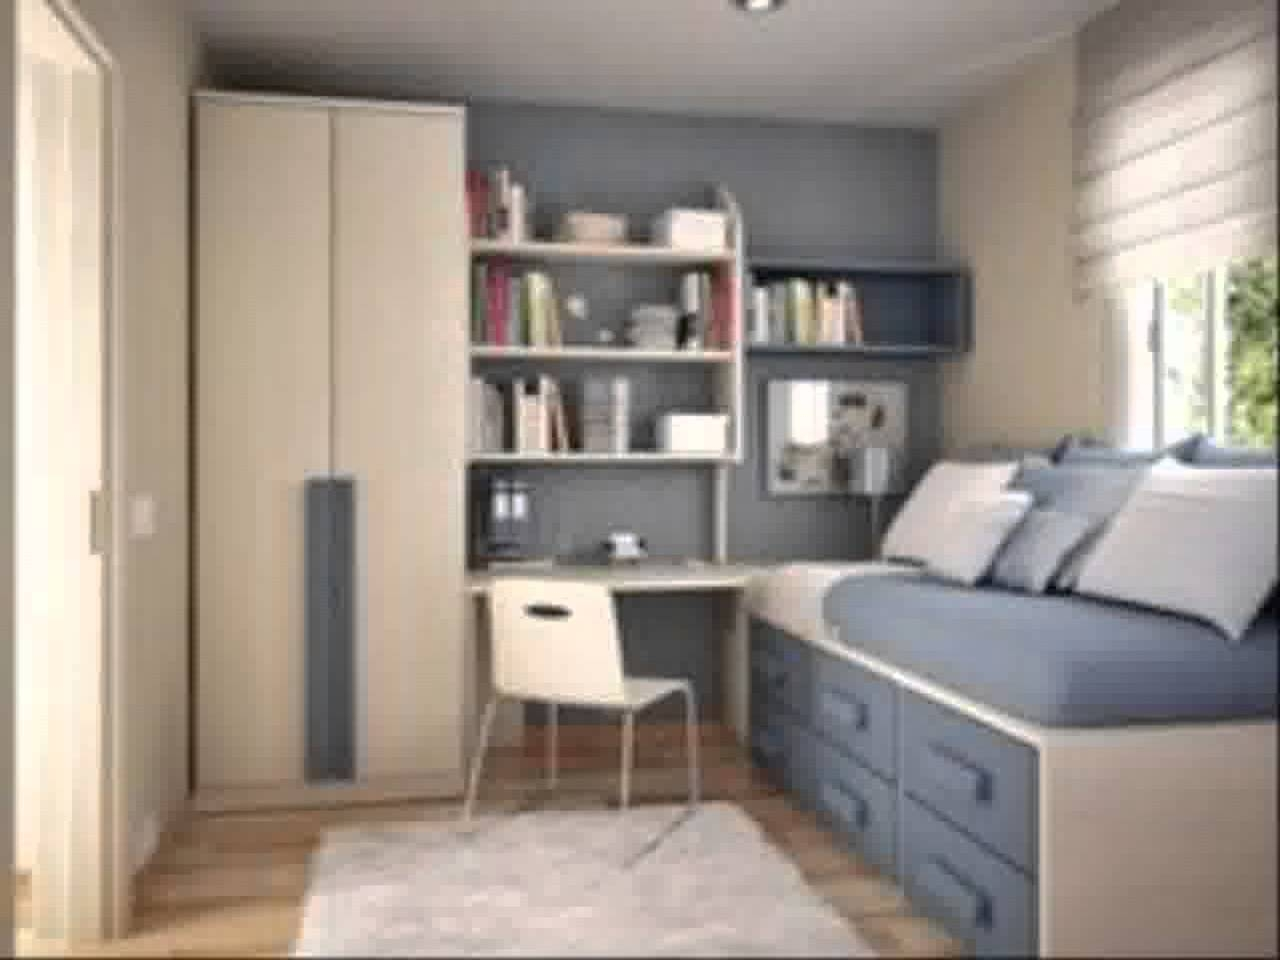 Bedroom Cabinets Image Via Wwwolxin Interior Bedroom Furniture For Study Cupboards (View 5 of 15)